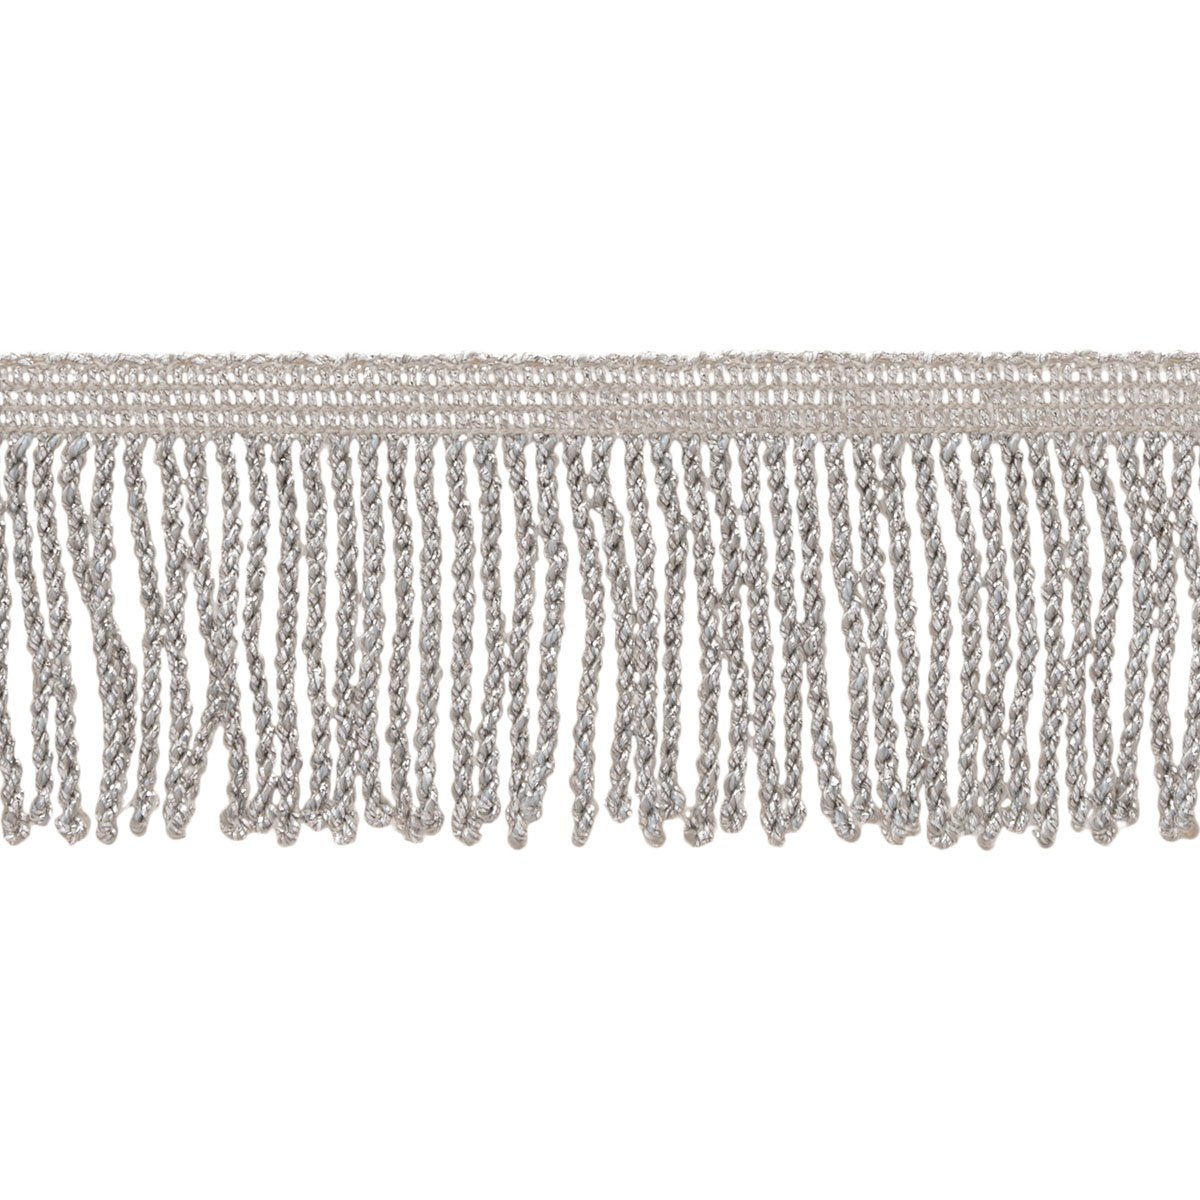 Wrights Bullion Fringe, 2-Inch by 9-Yard, Silver by Wright Products